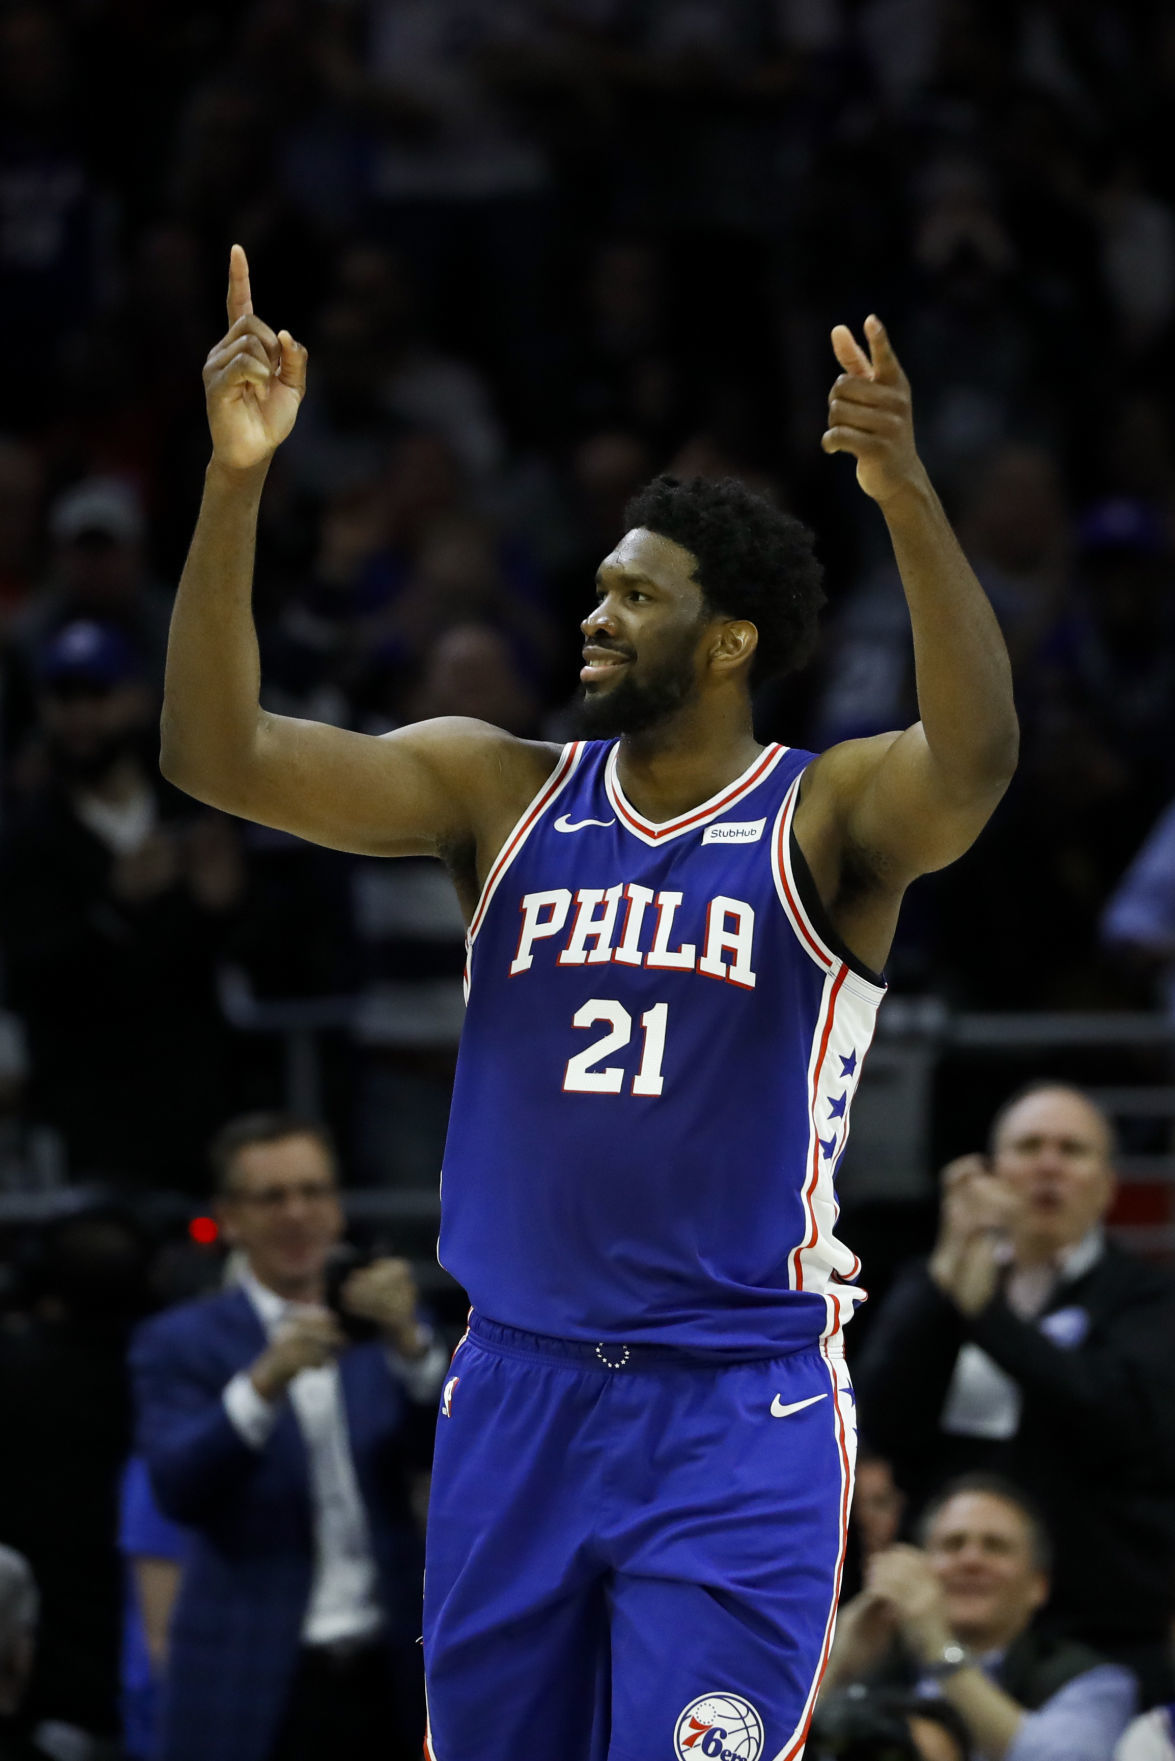 Philadelphia 76ers' center Joel Embiid celebrates scoring after a basket against the Boston Celtics. — AP Photo/Matt Slocum